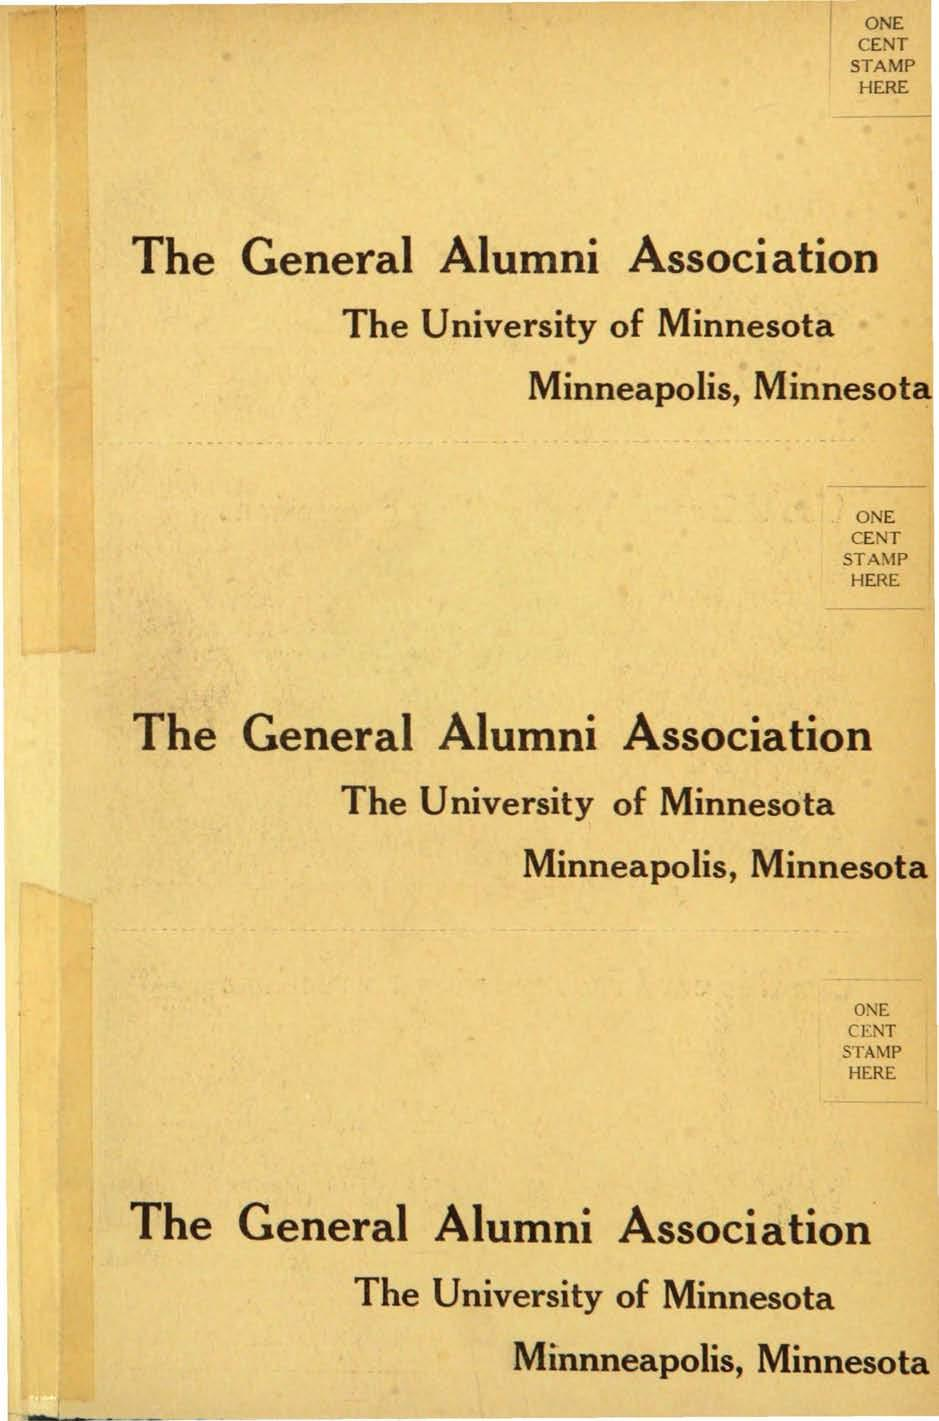 ONE CE T STAMP HERE The General Alumni Association The University of Minnesota Minneapolis, Minnesot o E CE T STAMP HERE The General Alumni